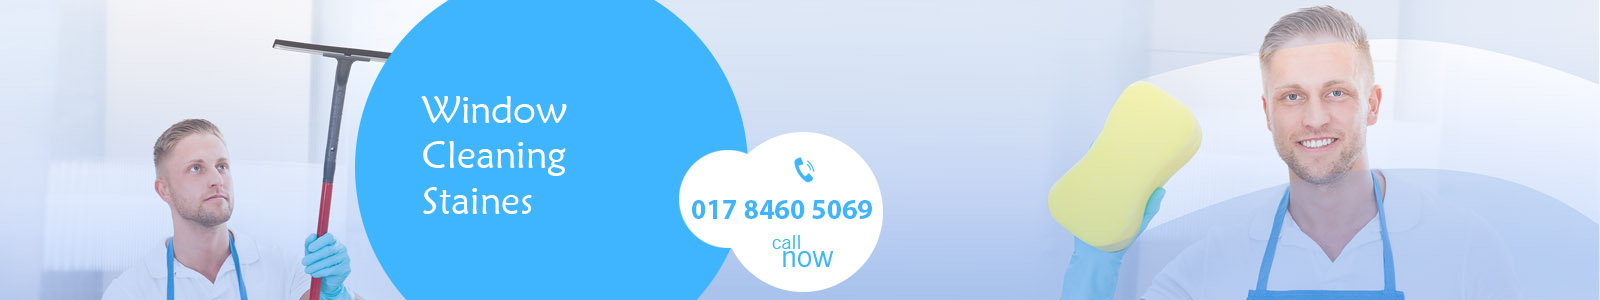 window-cleaning-staines